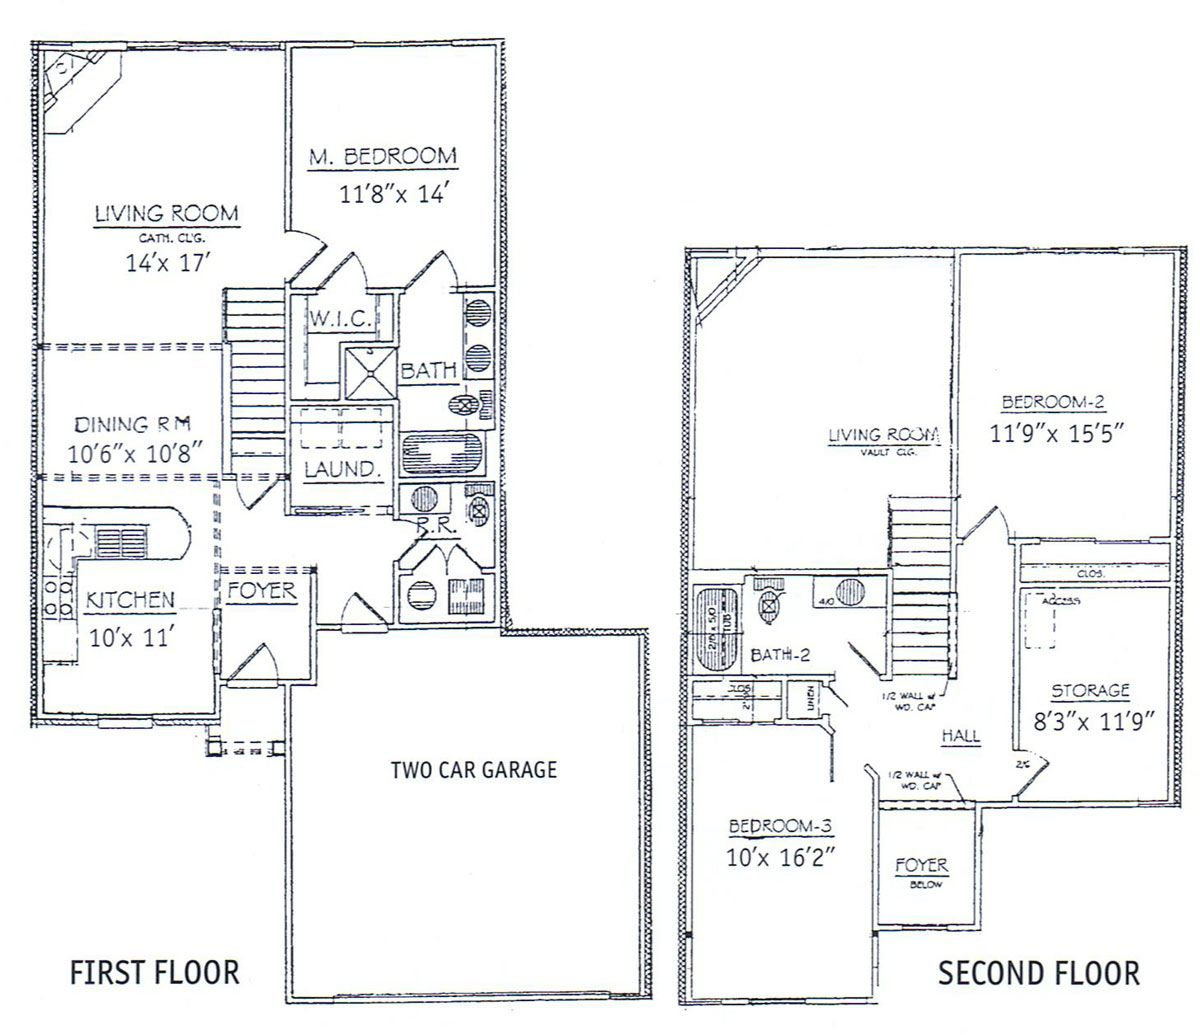 3 bedrooms floor plans 2 story bdrm basement the two for 3 bedroom house plans one story